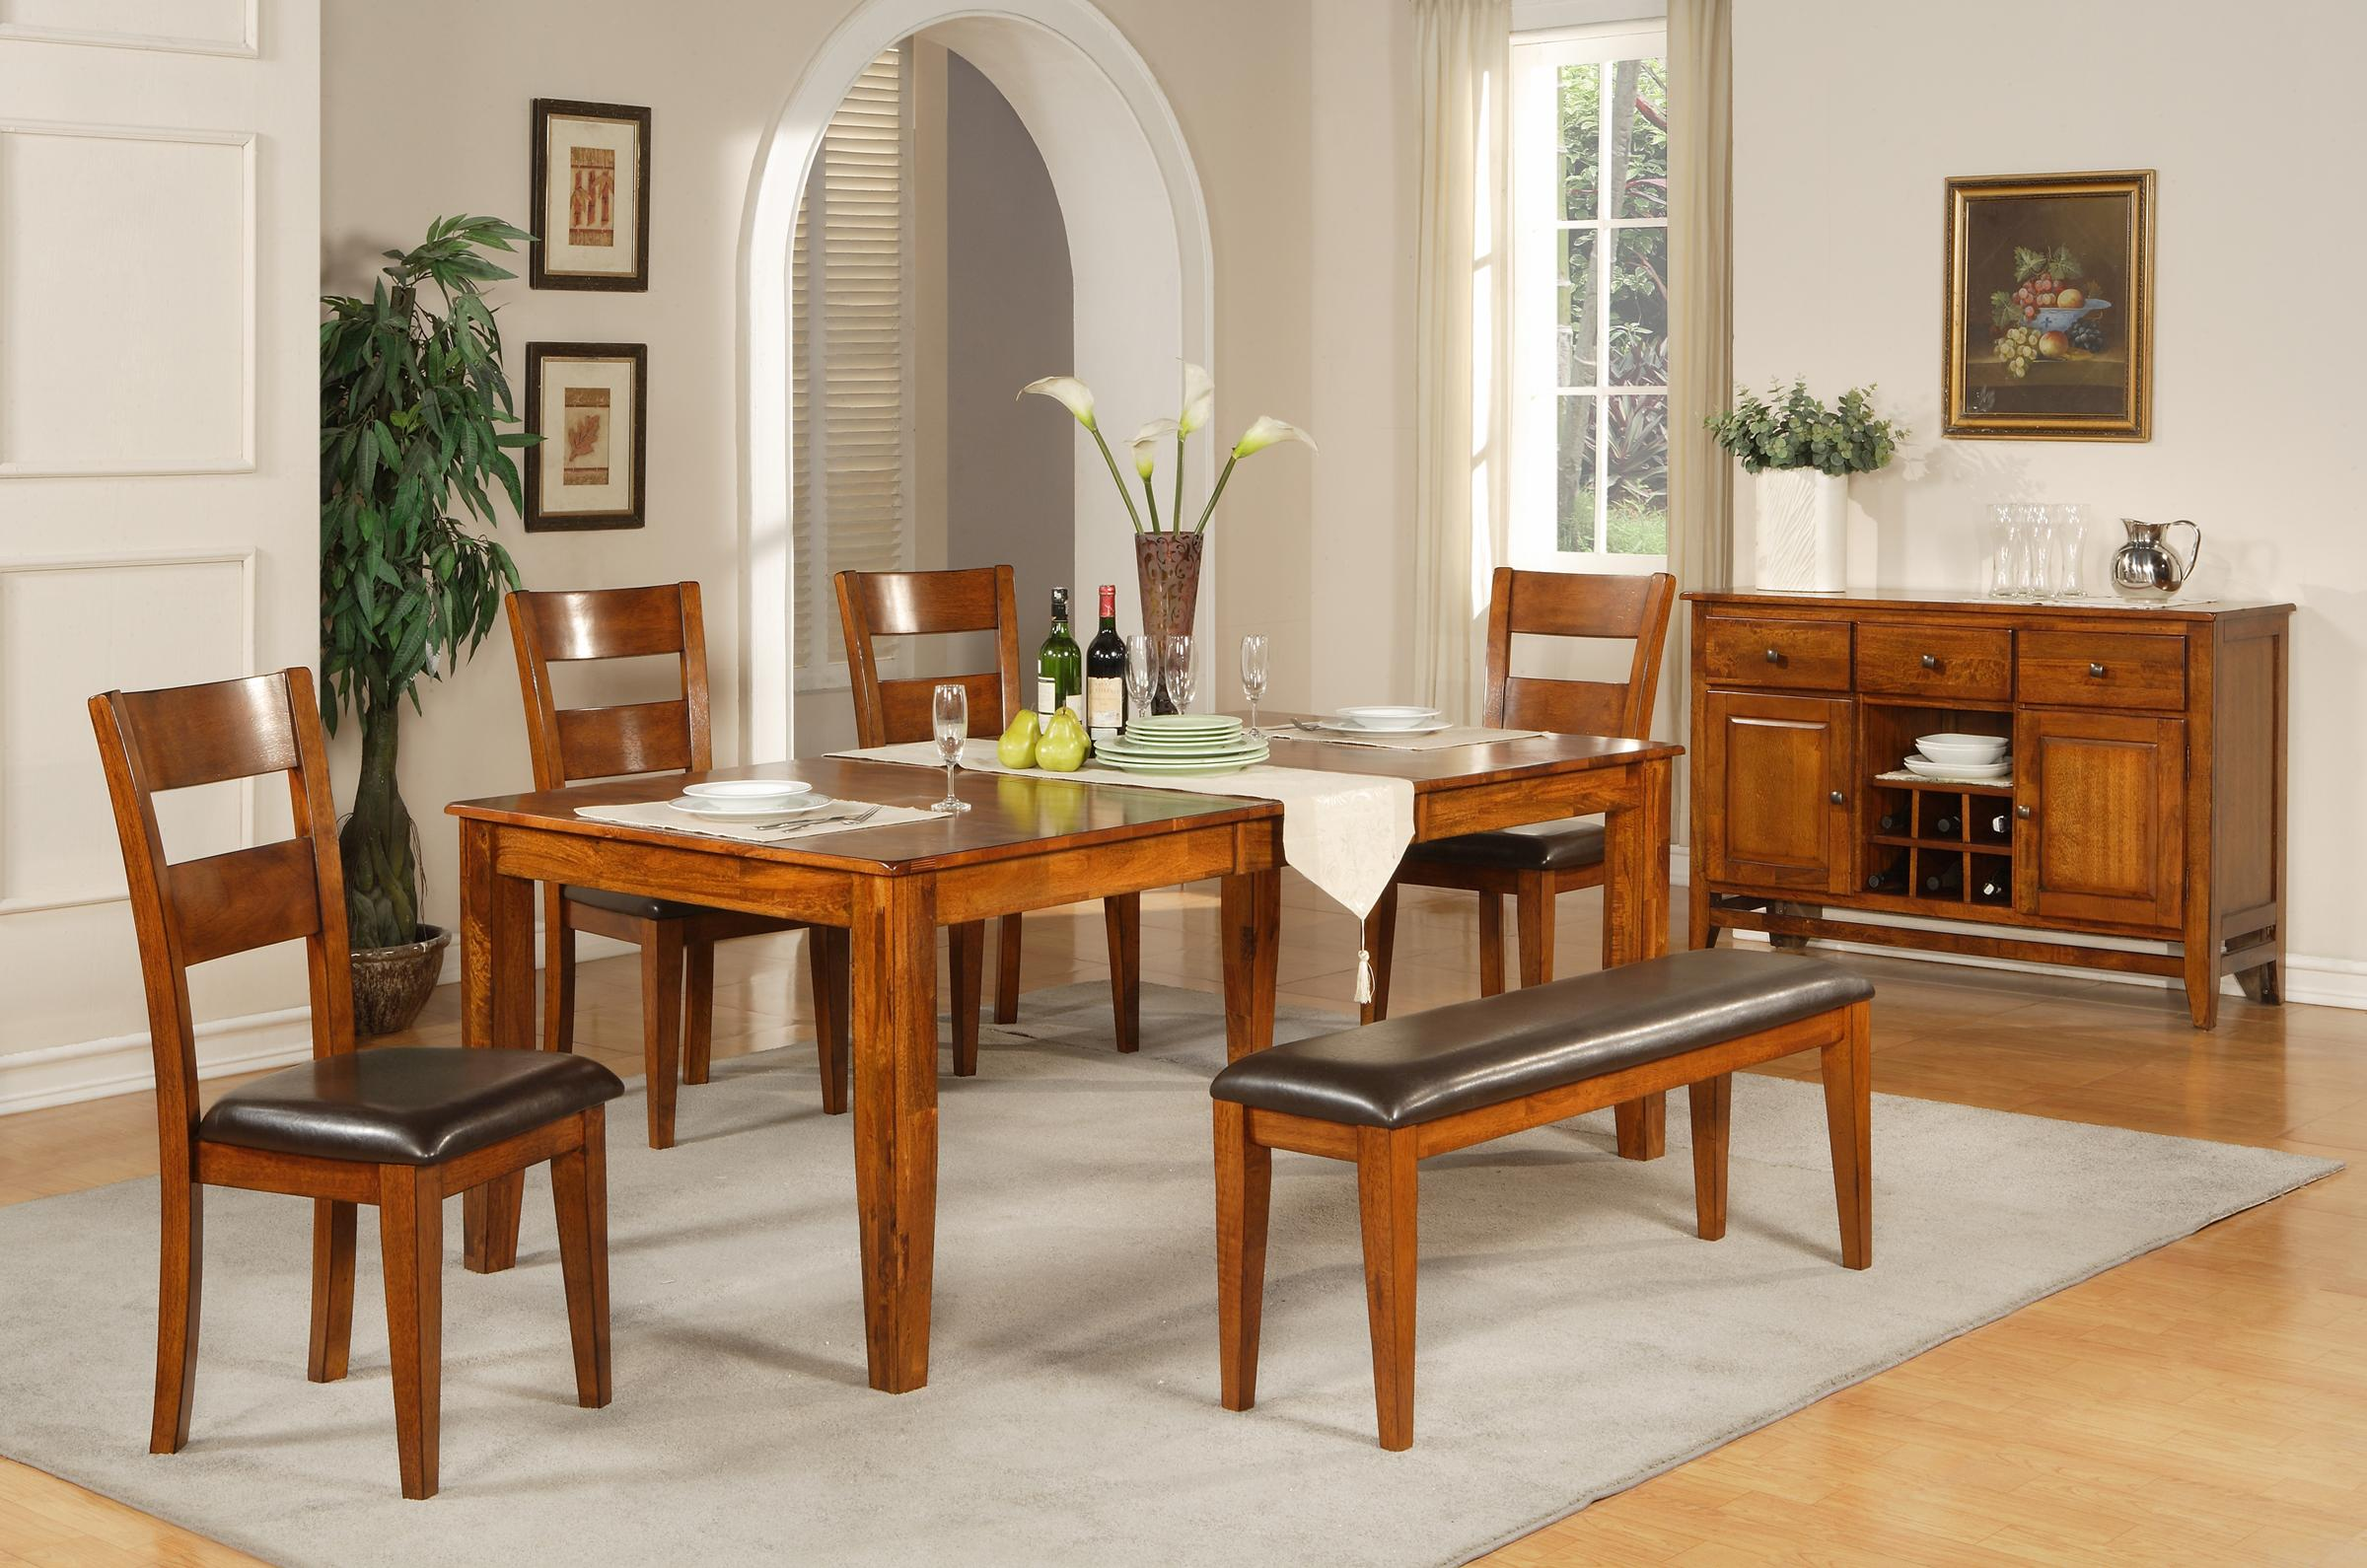 Mango Dining Room Group by Steve Silver at Northeast Factory Direct